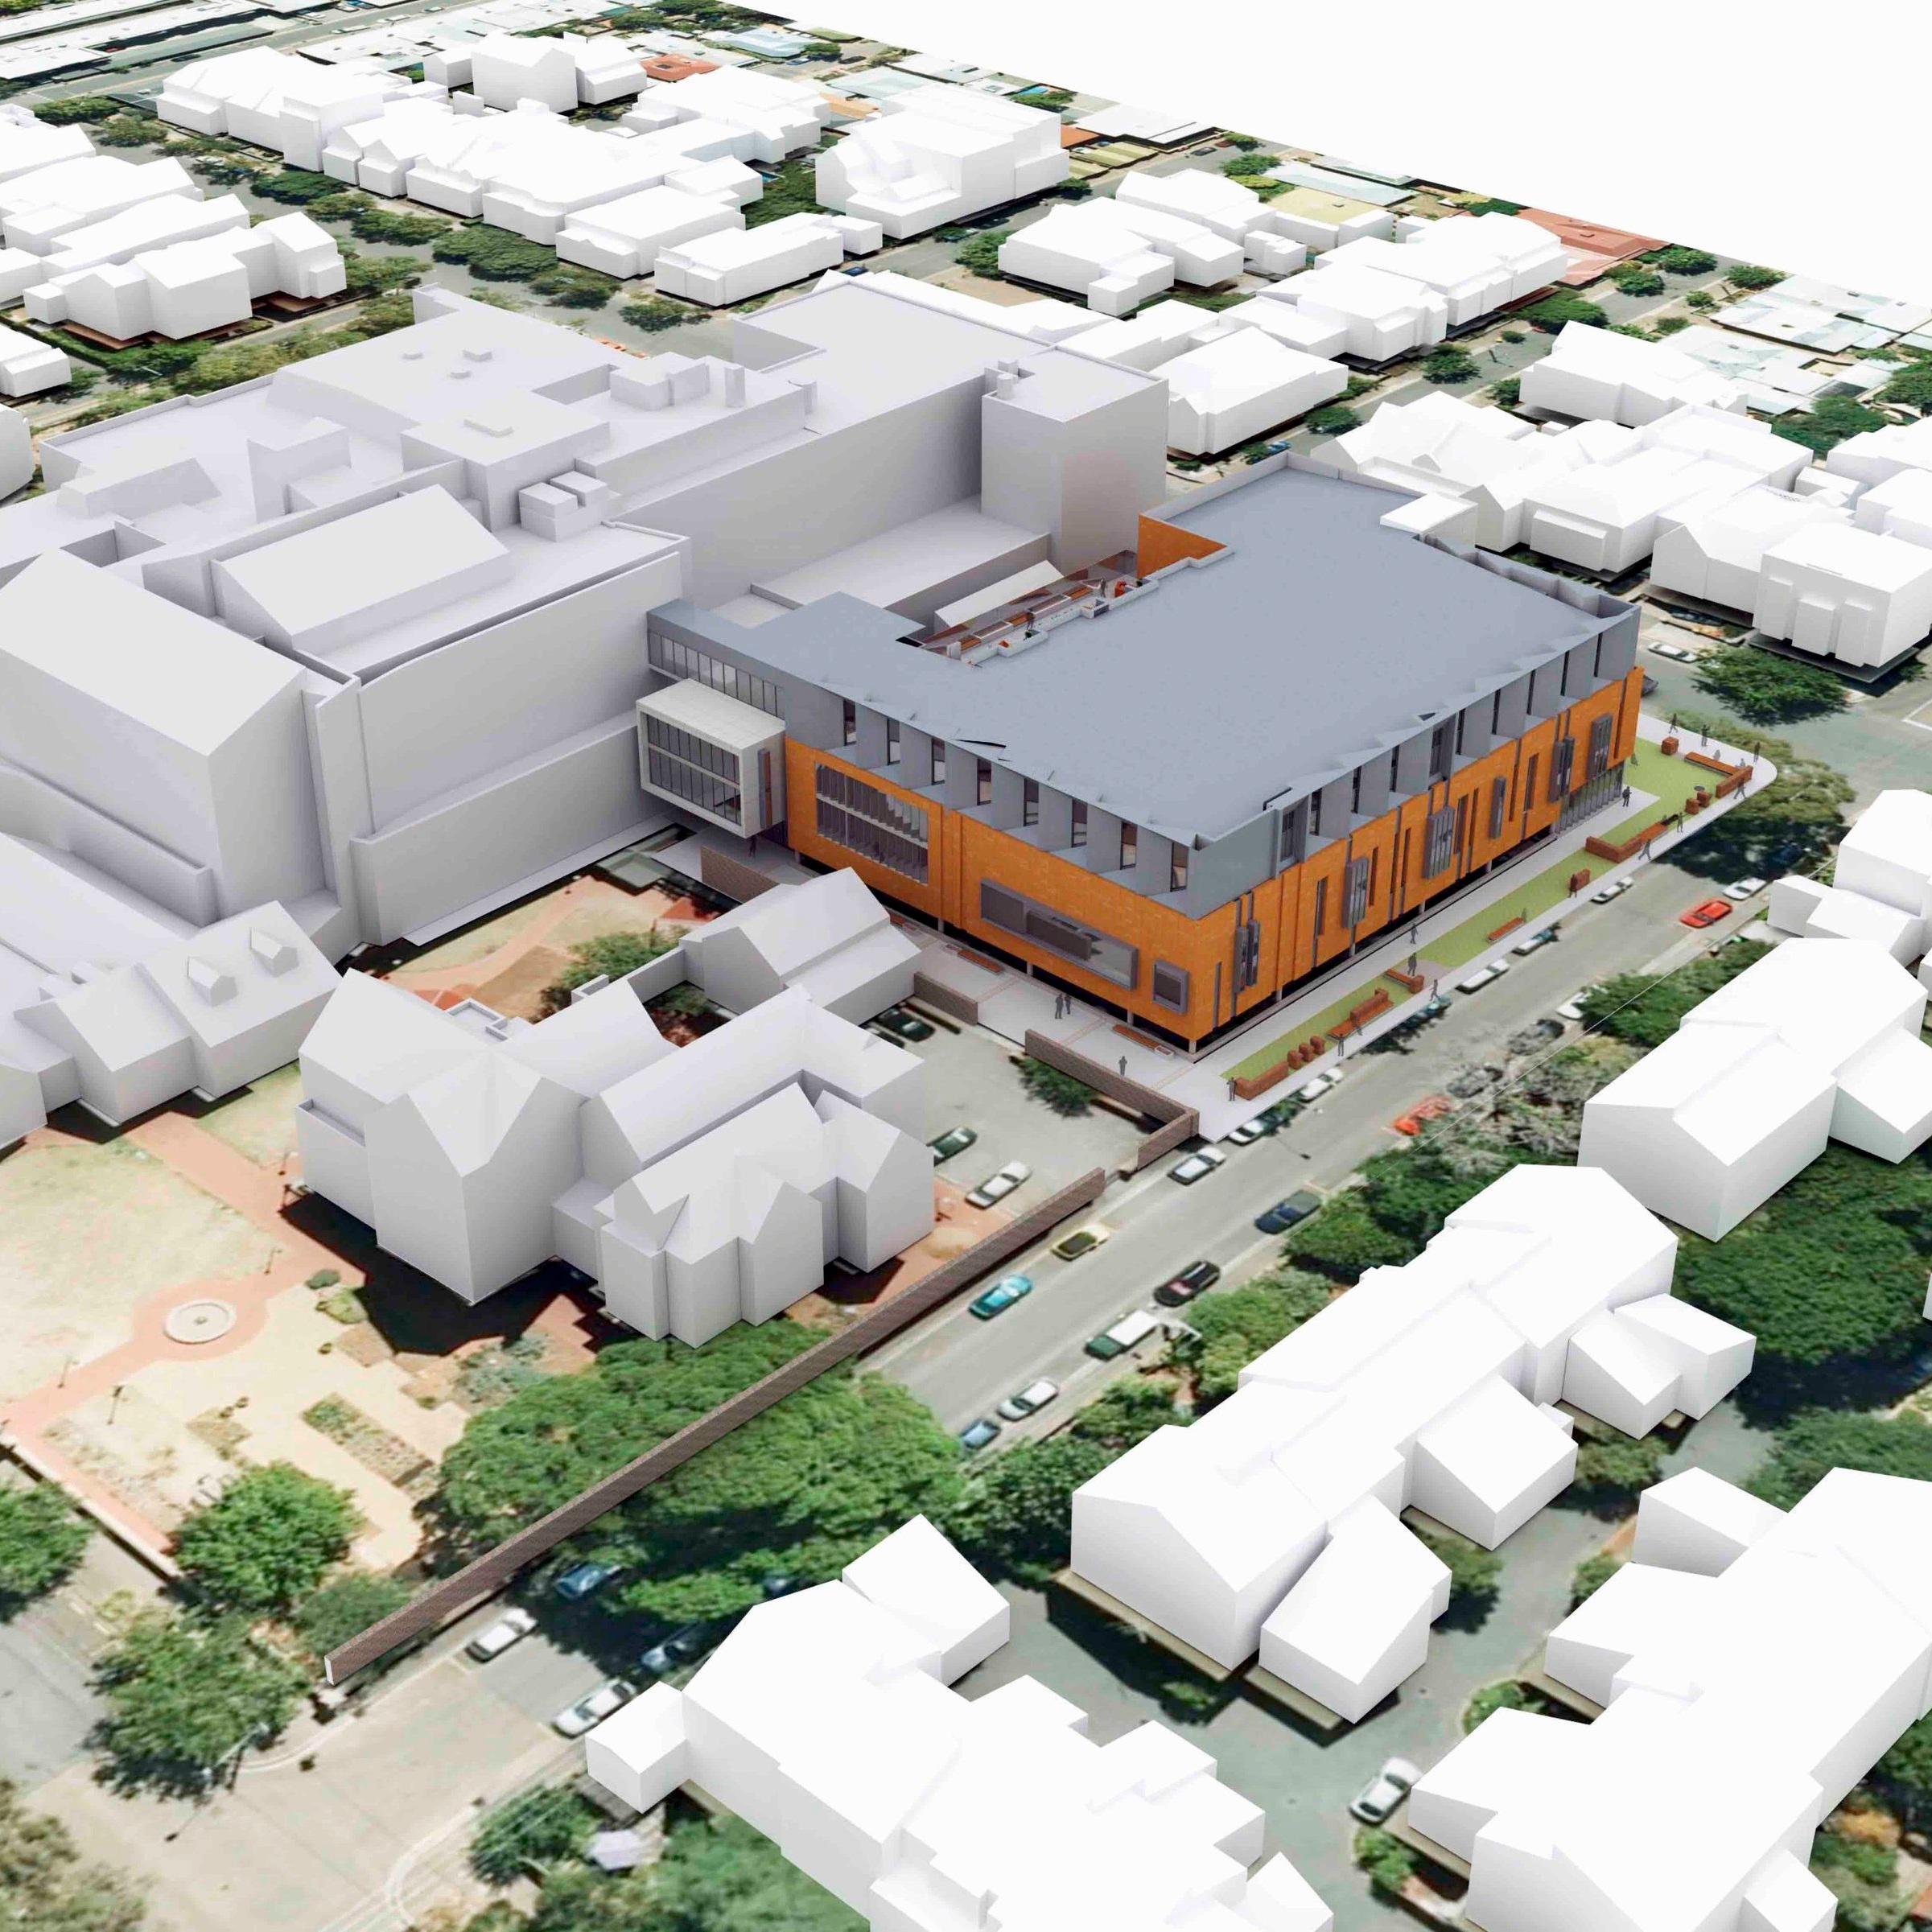 St Andrew's Hospital | Concepts and Development Approval   Massing model placed within existing urban context, supported by exploded axonometric graphics to assist visualisation of floor use, functional relationships and circulation.